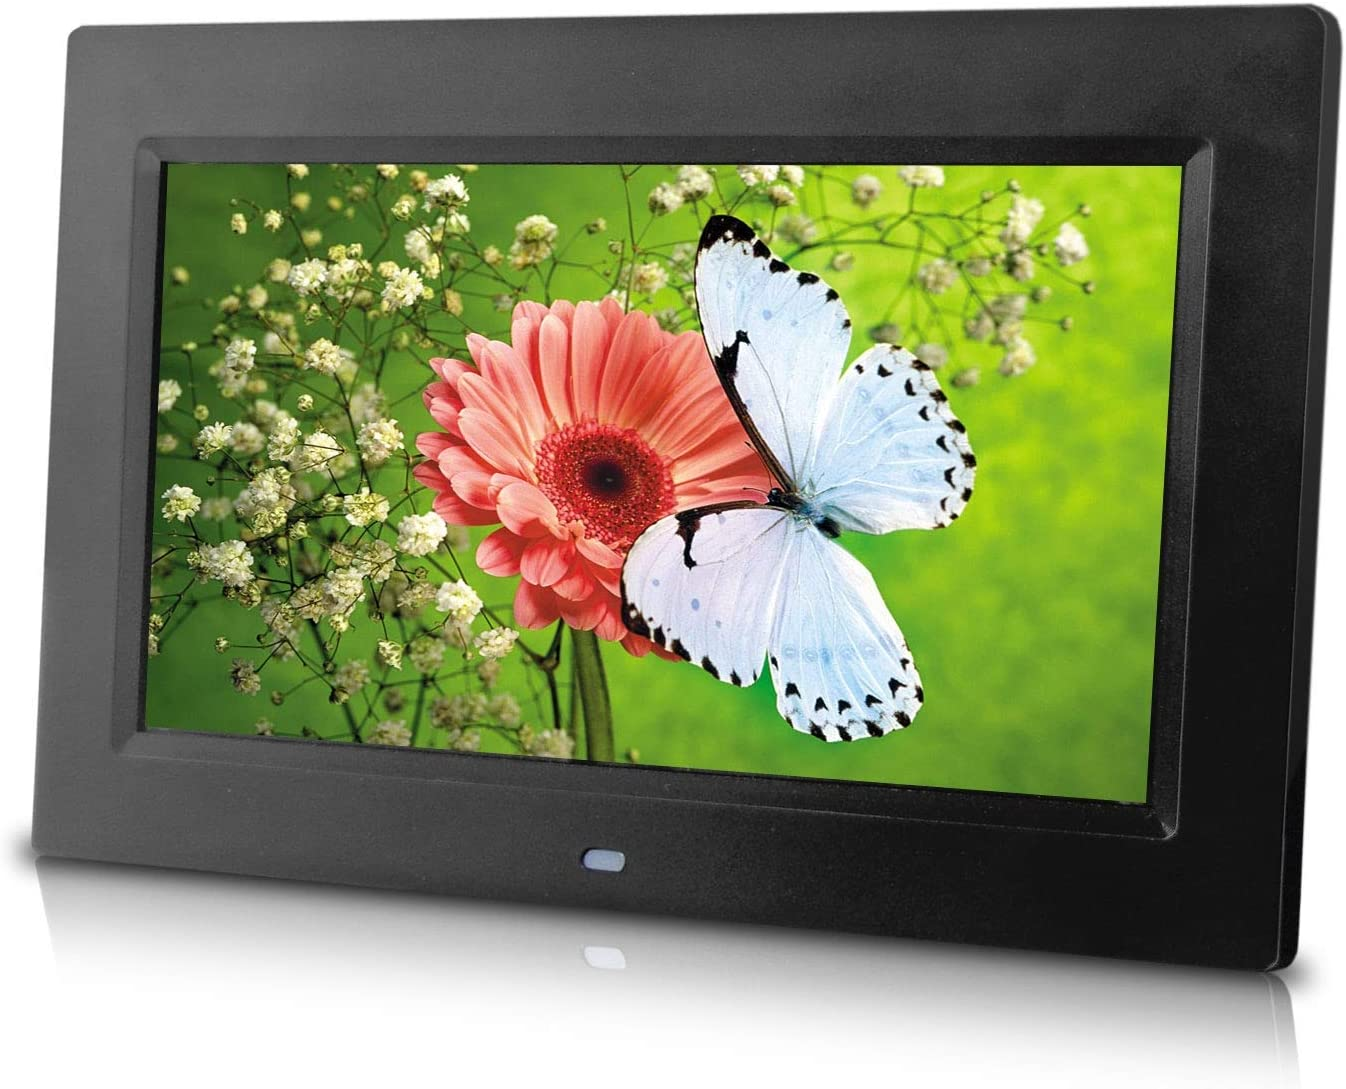 10 inch Digital Photo Frame w/Hi-Resolution Screen. Use Your SD Card or USB Drive for Photo Access. Includes a Variety of Transition and slideshow Options 71jIphAJKgLSL1500_